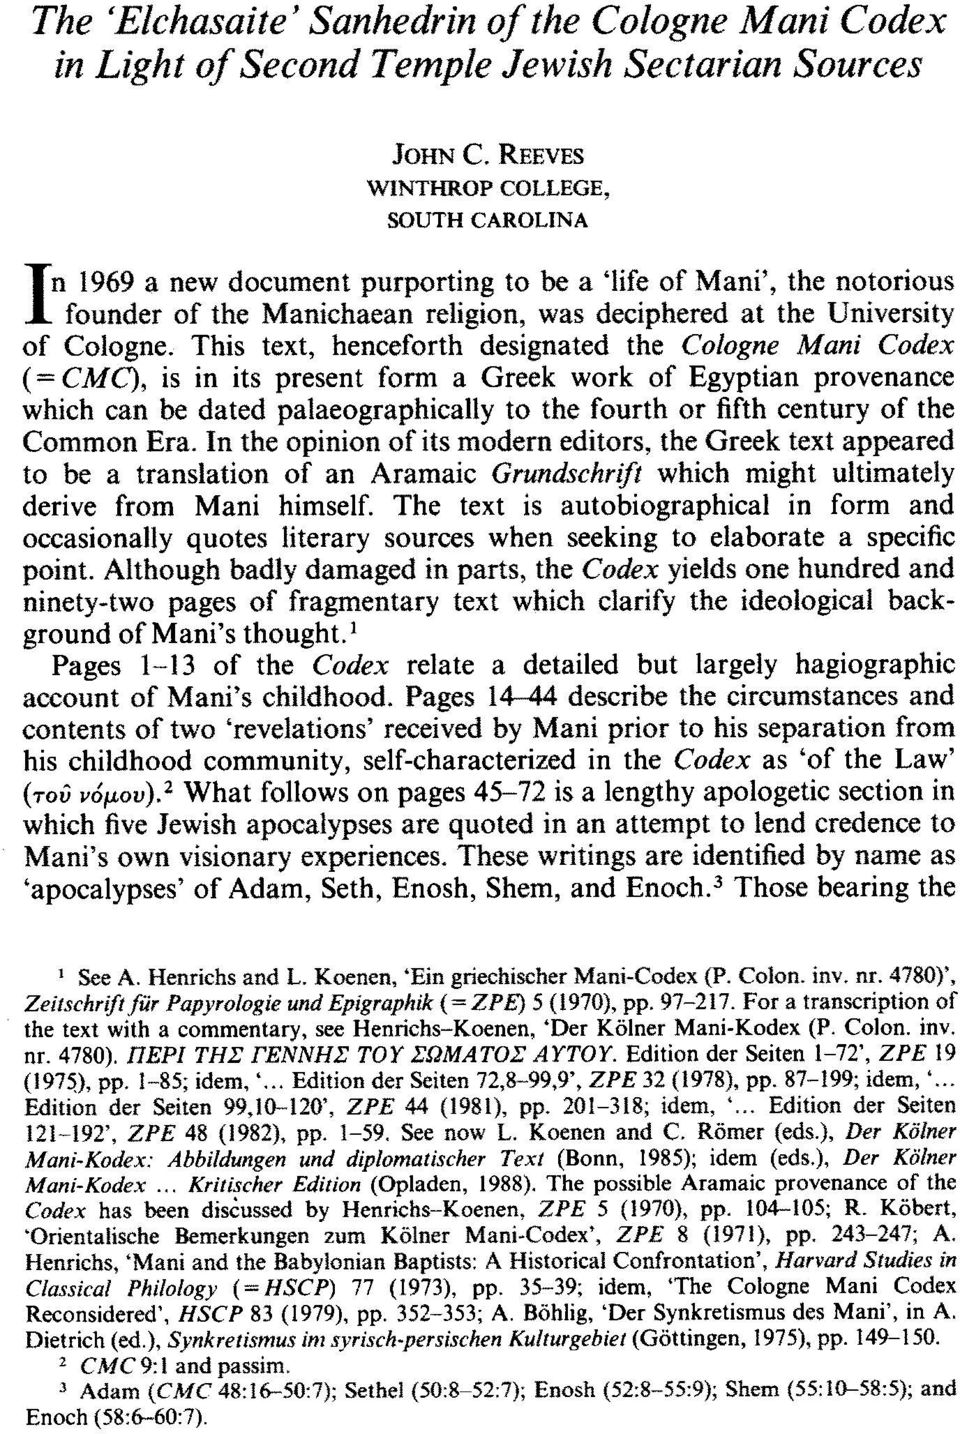 This text, henceforth designated the Cologne Mani Codex (= CMC), is in its present form a Greek work of Egyptian provenance which can be dated palaeographically to the fourth or fifth century of the